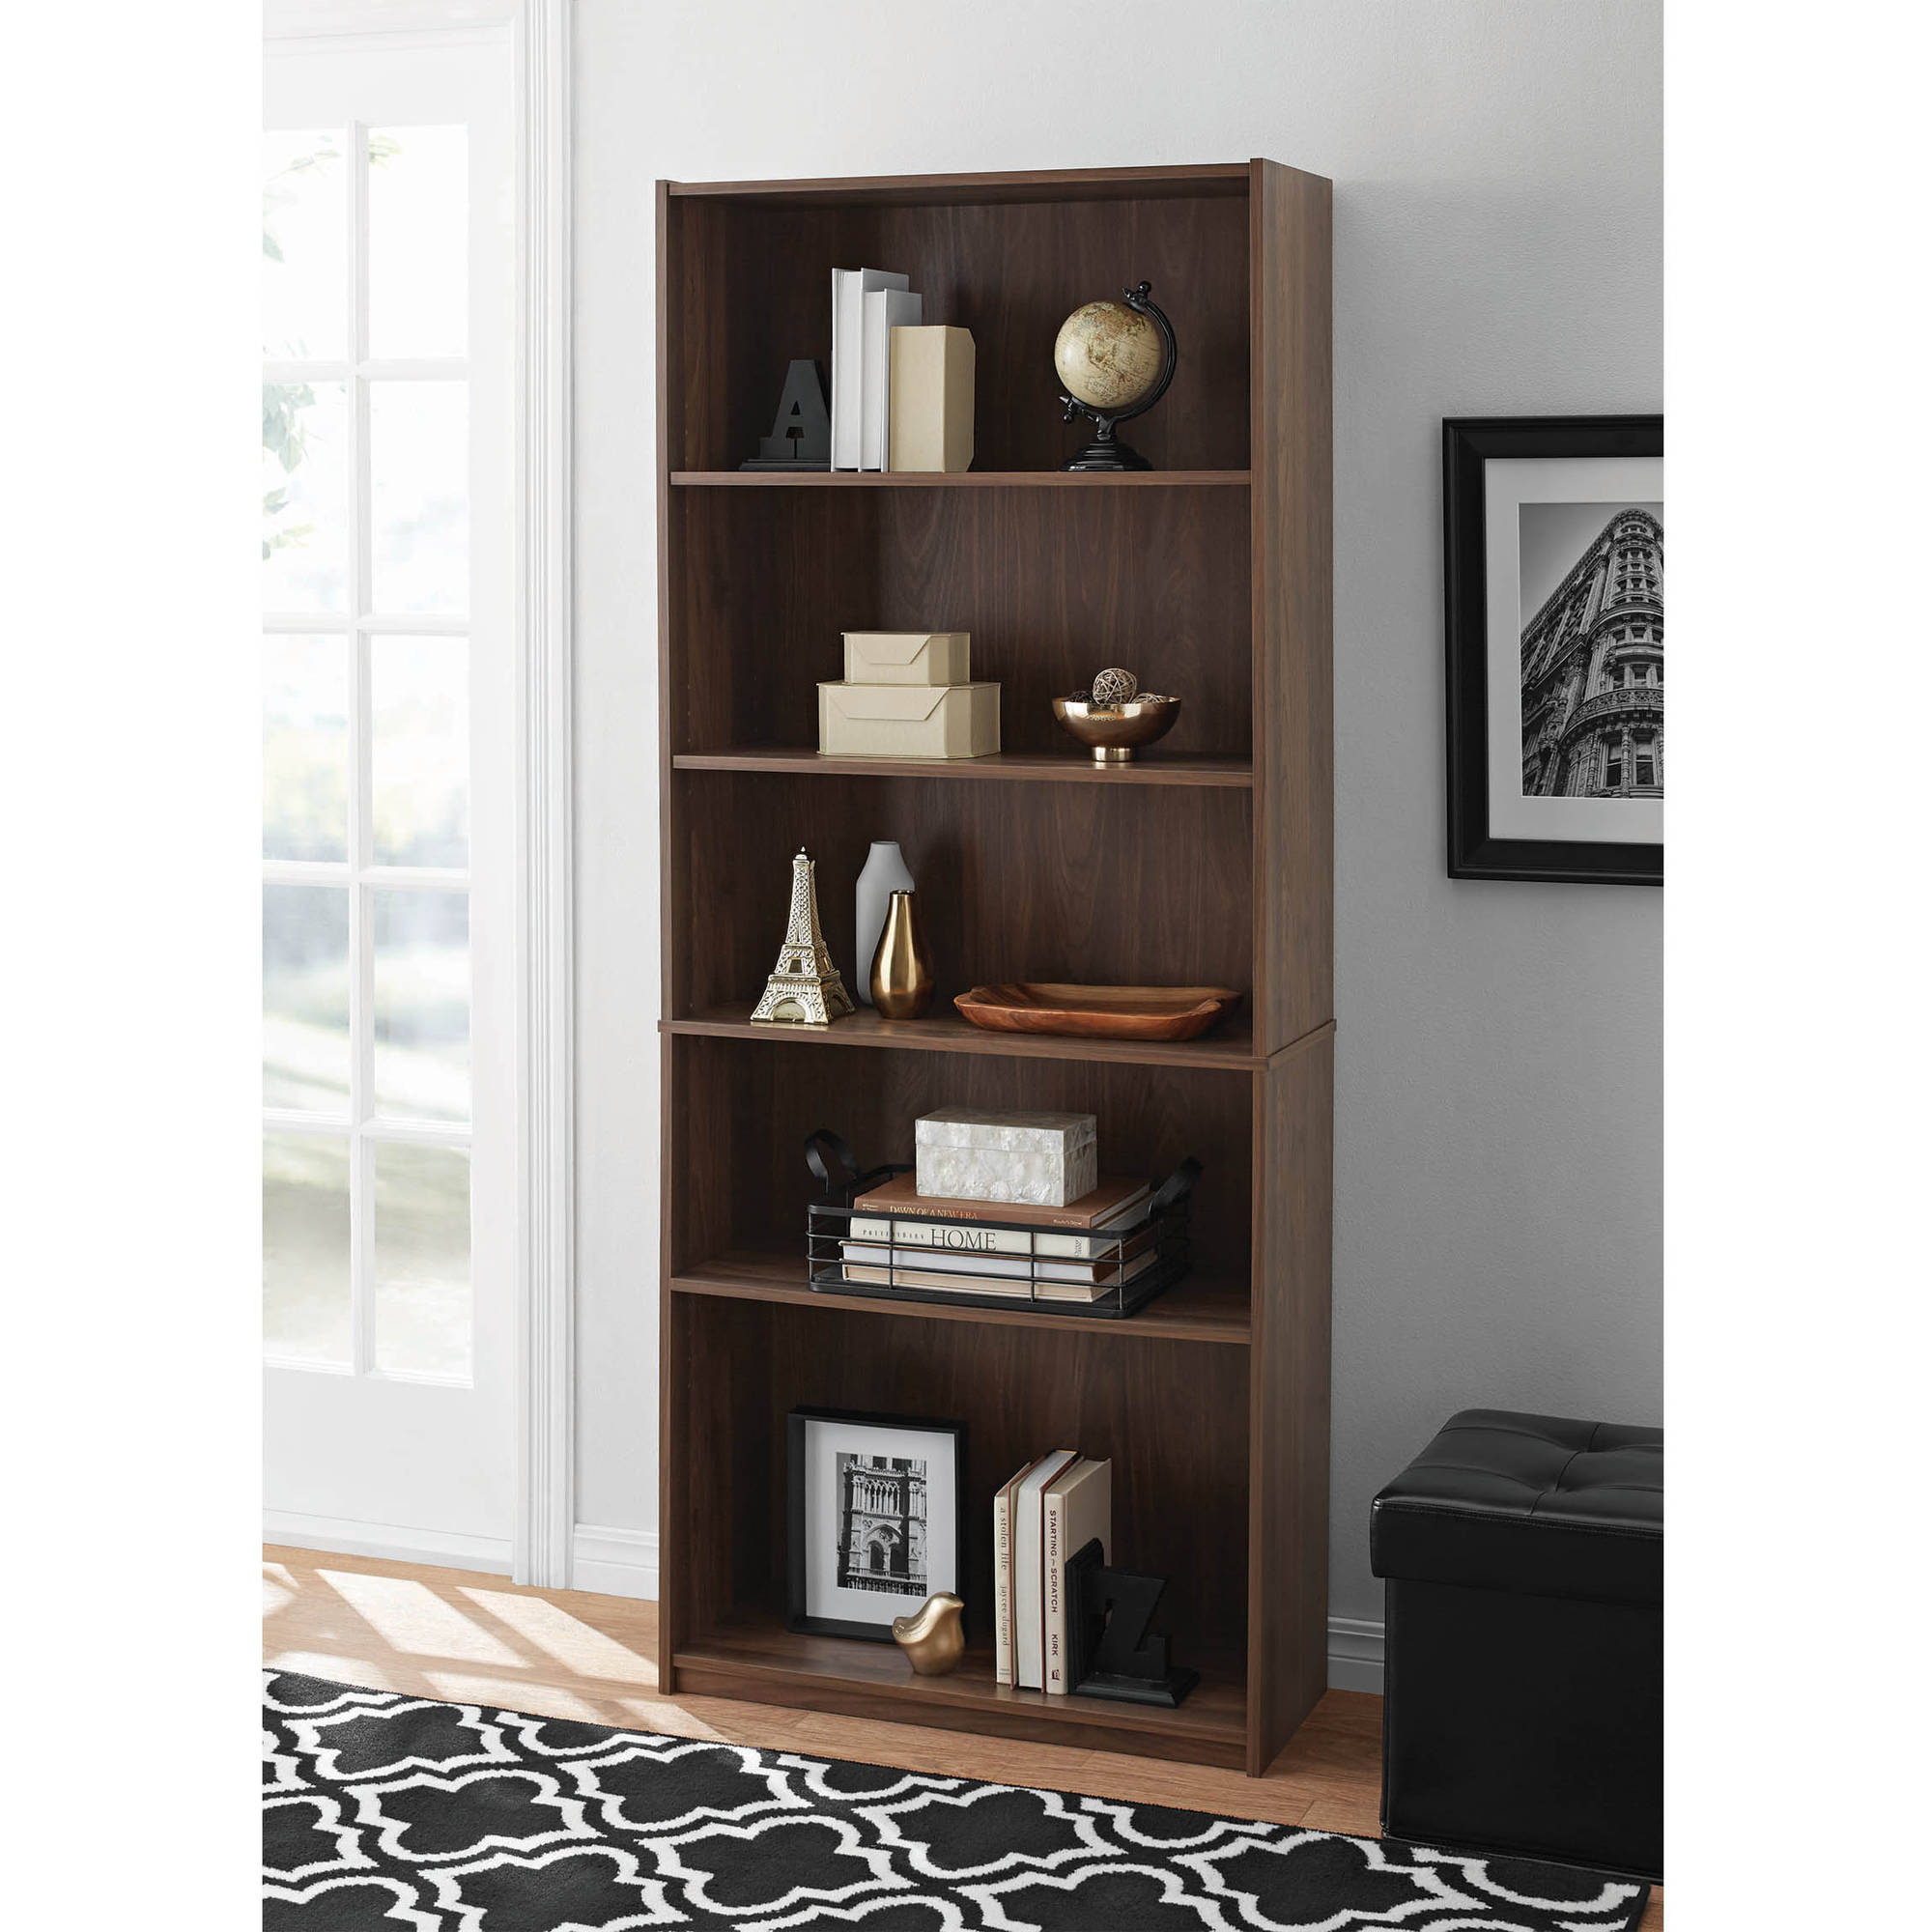 mainstays 5 shelf wood bookcase storage furniture bookshelf walnut